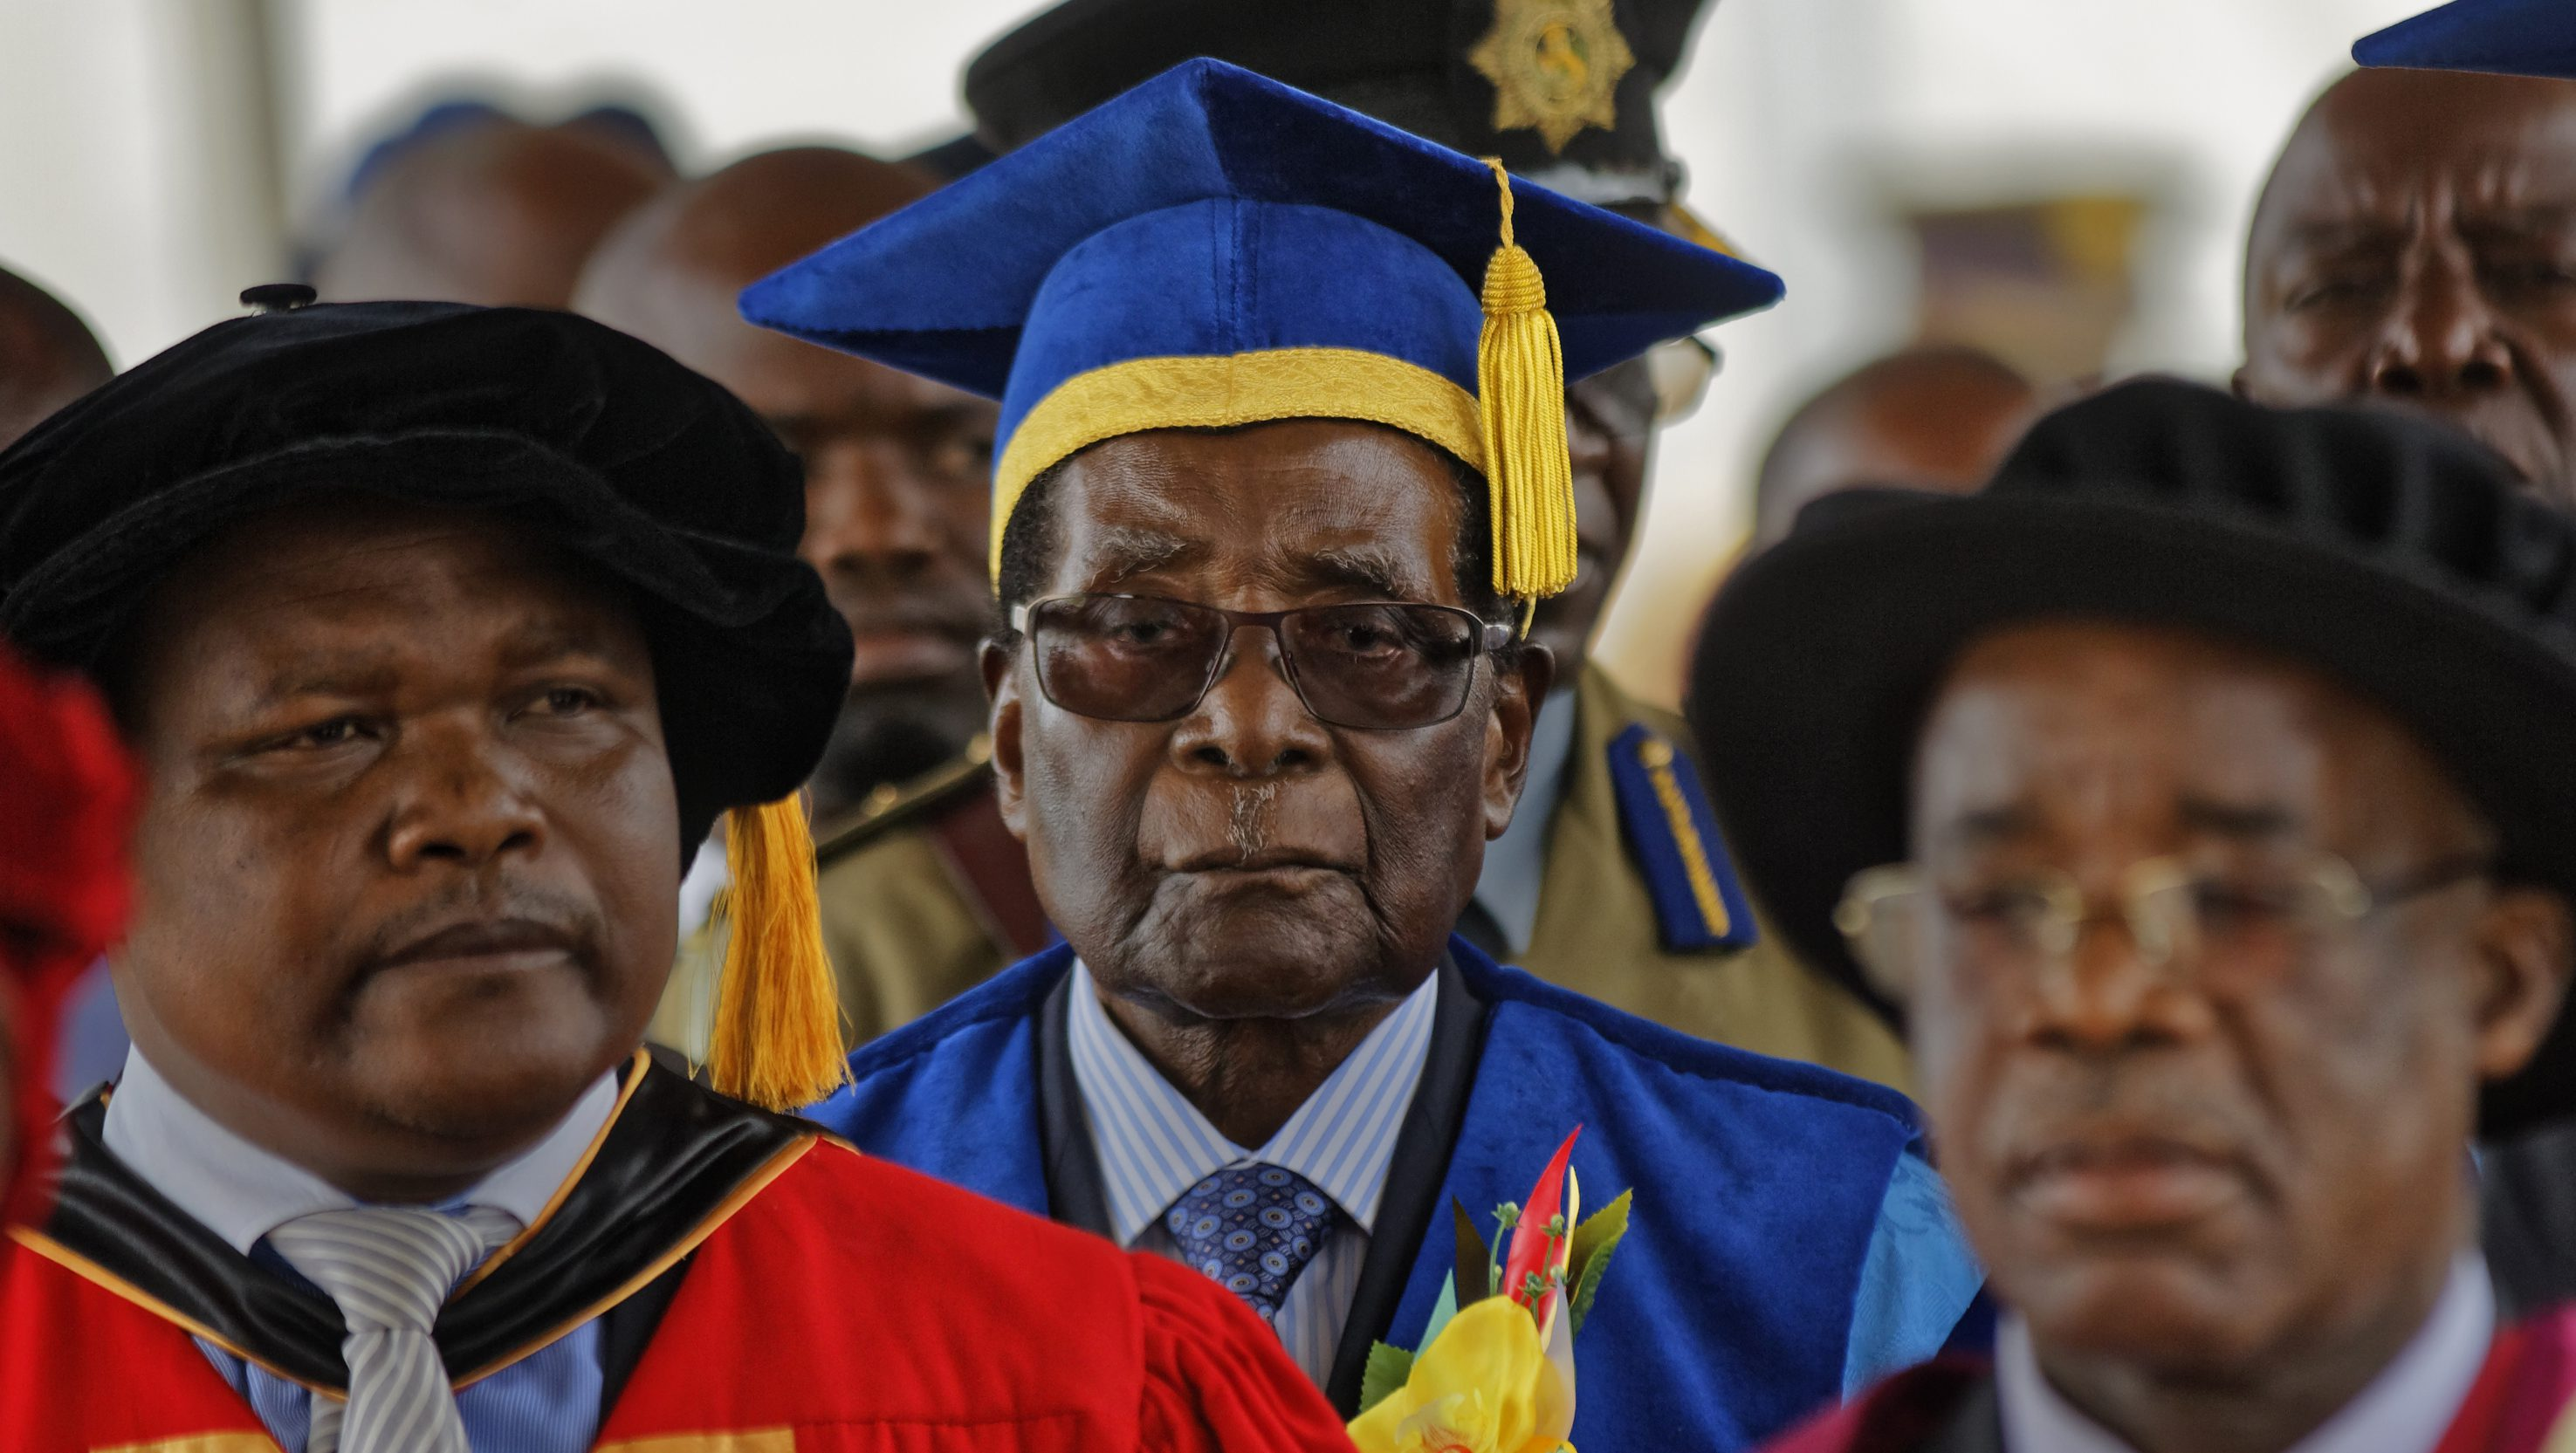 Zimbabwe's President Robert Mugabe, center, arrives to preside over a student graduation ceremony at Zimbabwe Open University on the outskirts of the capital, Harare, on Nov. 17, 2017.